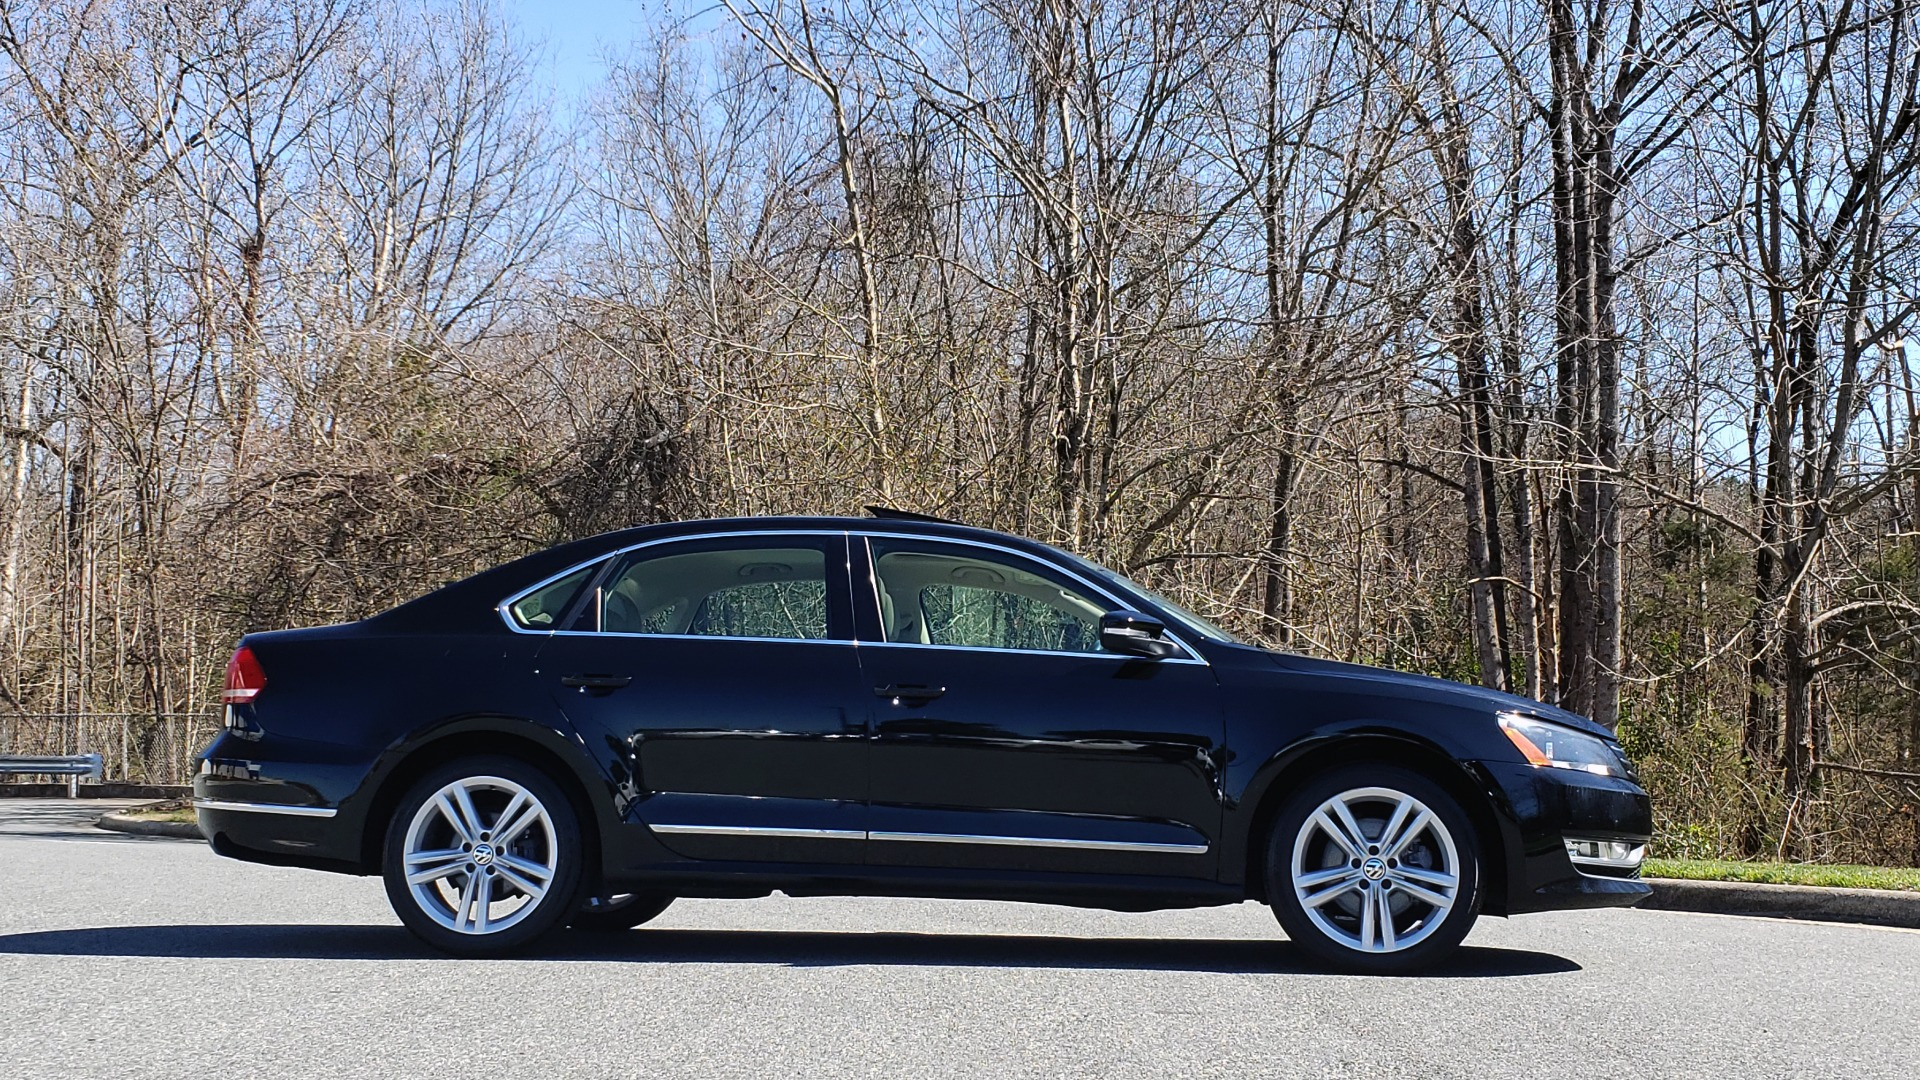 Used 2014 Volkswagen PASSAT SEL PREMIUM / NAV / SUNROOF / REARVIEW / 6-SPD AUTO for sale Sold at Formula Imports in Charlotte NC 28227 5